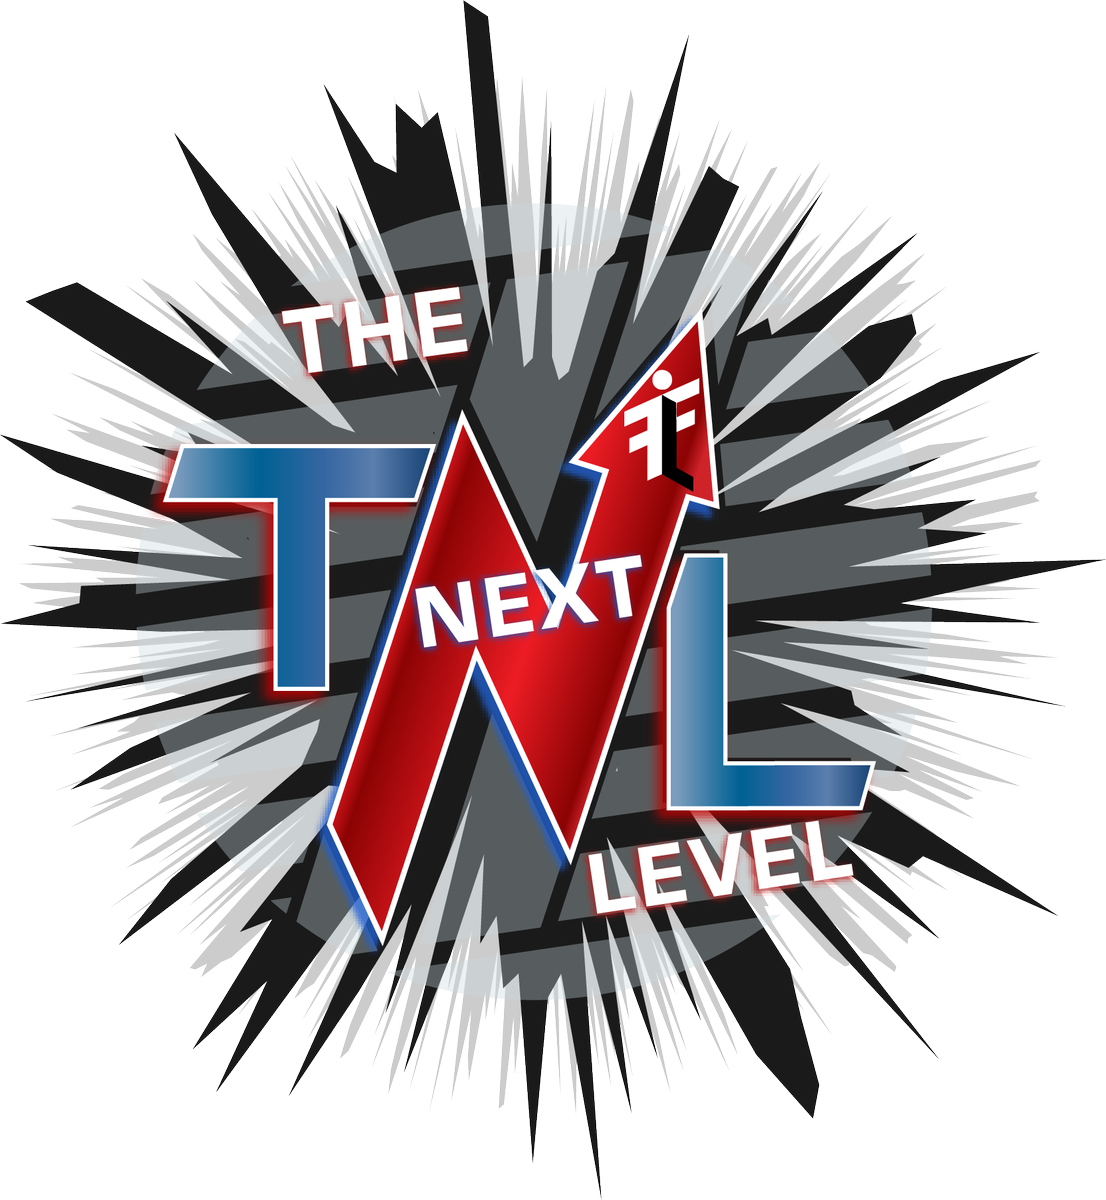 Join us this #Friday and learn how to take your #business to &quot;The Next Level&quot;  #TNL   Every Friday at 11AM EST   605-472-5668  884915#<br>http://pic.twitter.com/2tyCnLgdTF